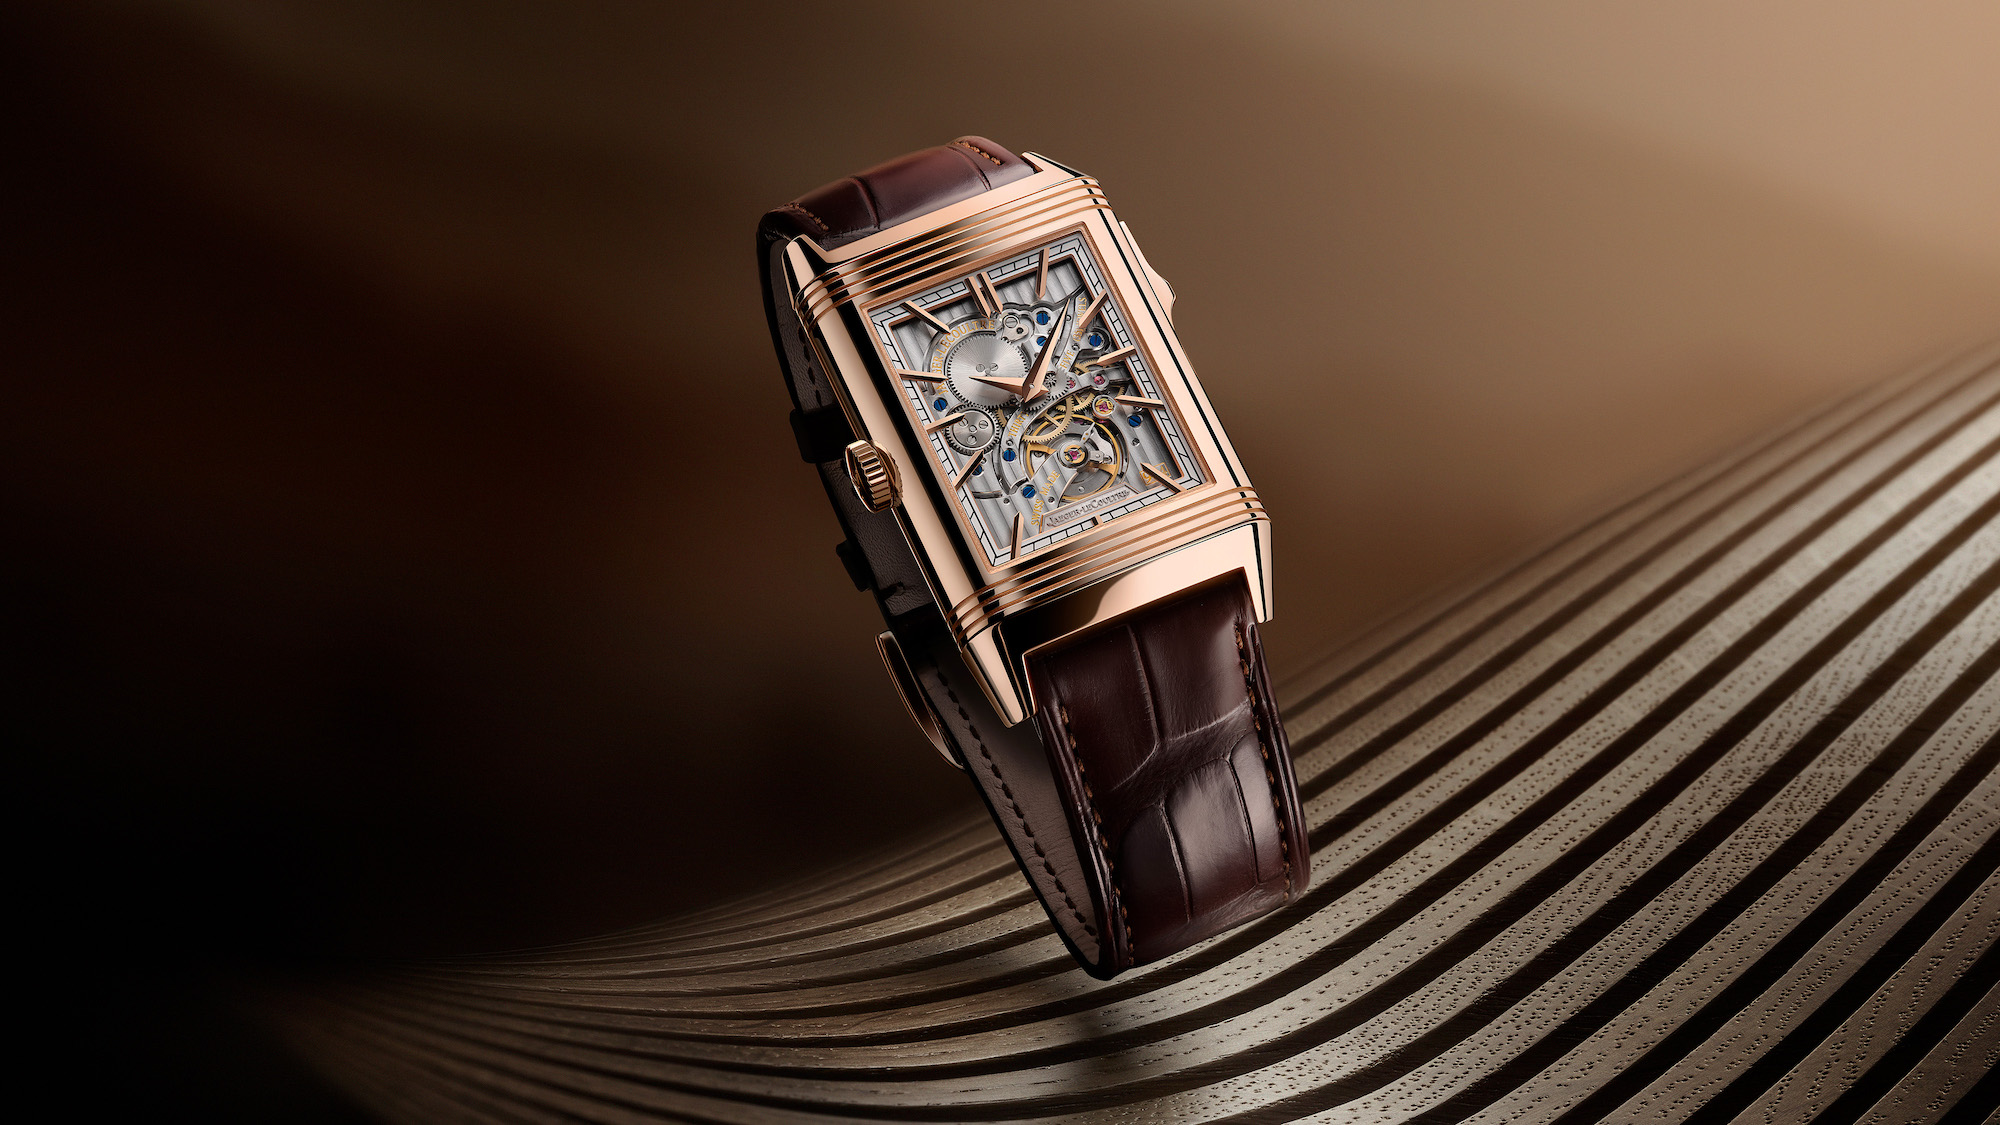 Jaeger-LeCoultre Reverso Tribute Minute Repeater Lifestyle verso